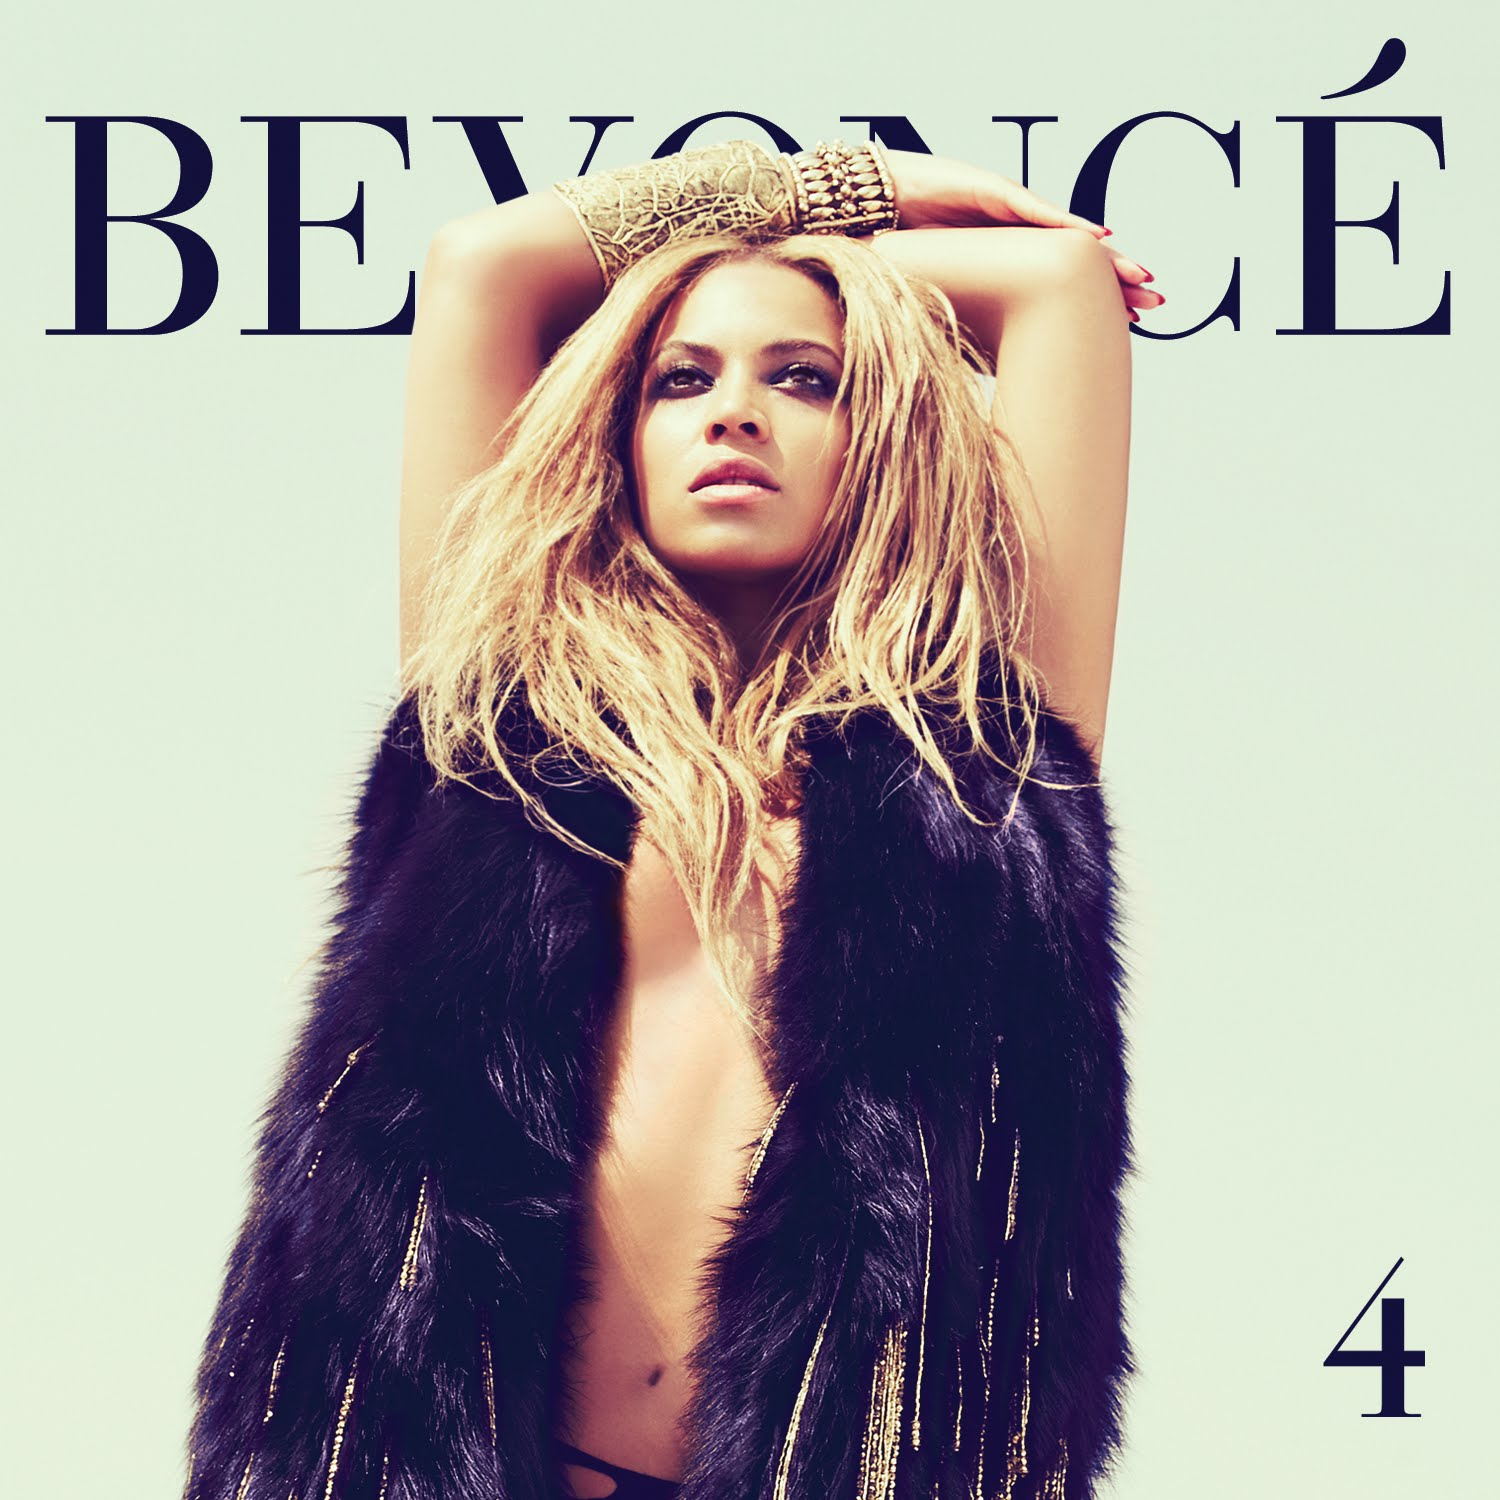 http://1.bp.blogspot.com/-yqTF8Tsgg8A/TdoaFIzdRtI/AAAAAAAAA68/fr6pGeJ5nhw/s1600/Beyonc%25C3%25A9+-+4+%2528Official+Album+Cover%2529+Out+June+28.jpeg